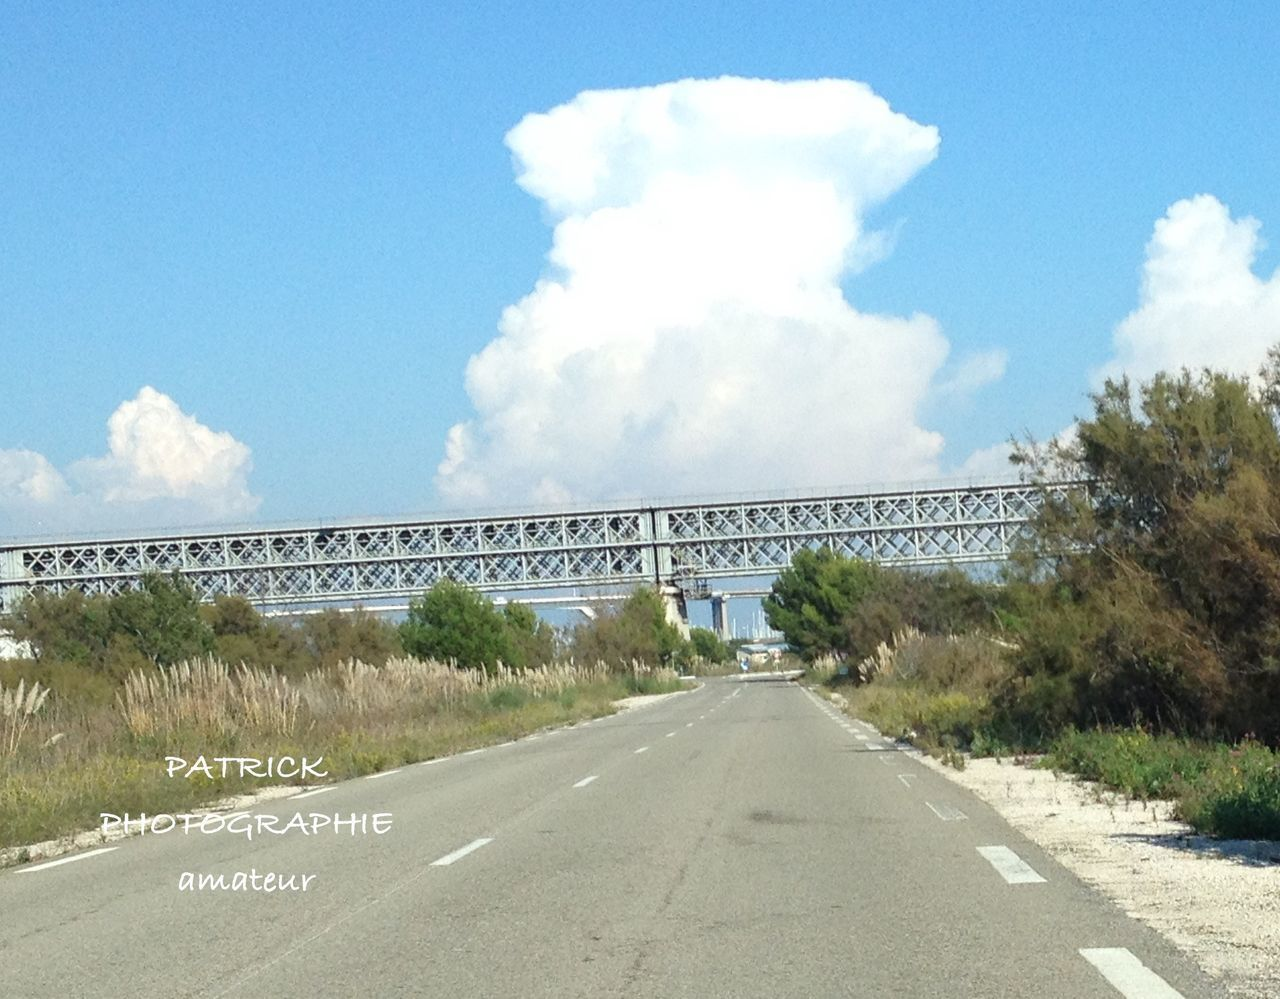 sky, cloud - sky, road, the way forward, day, no people, built structure, architecture, transportation, outdoors, nature, tree